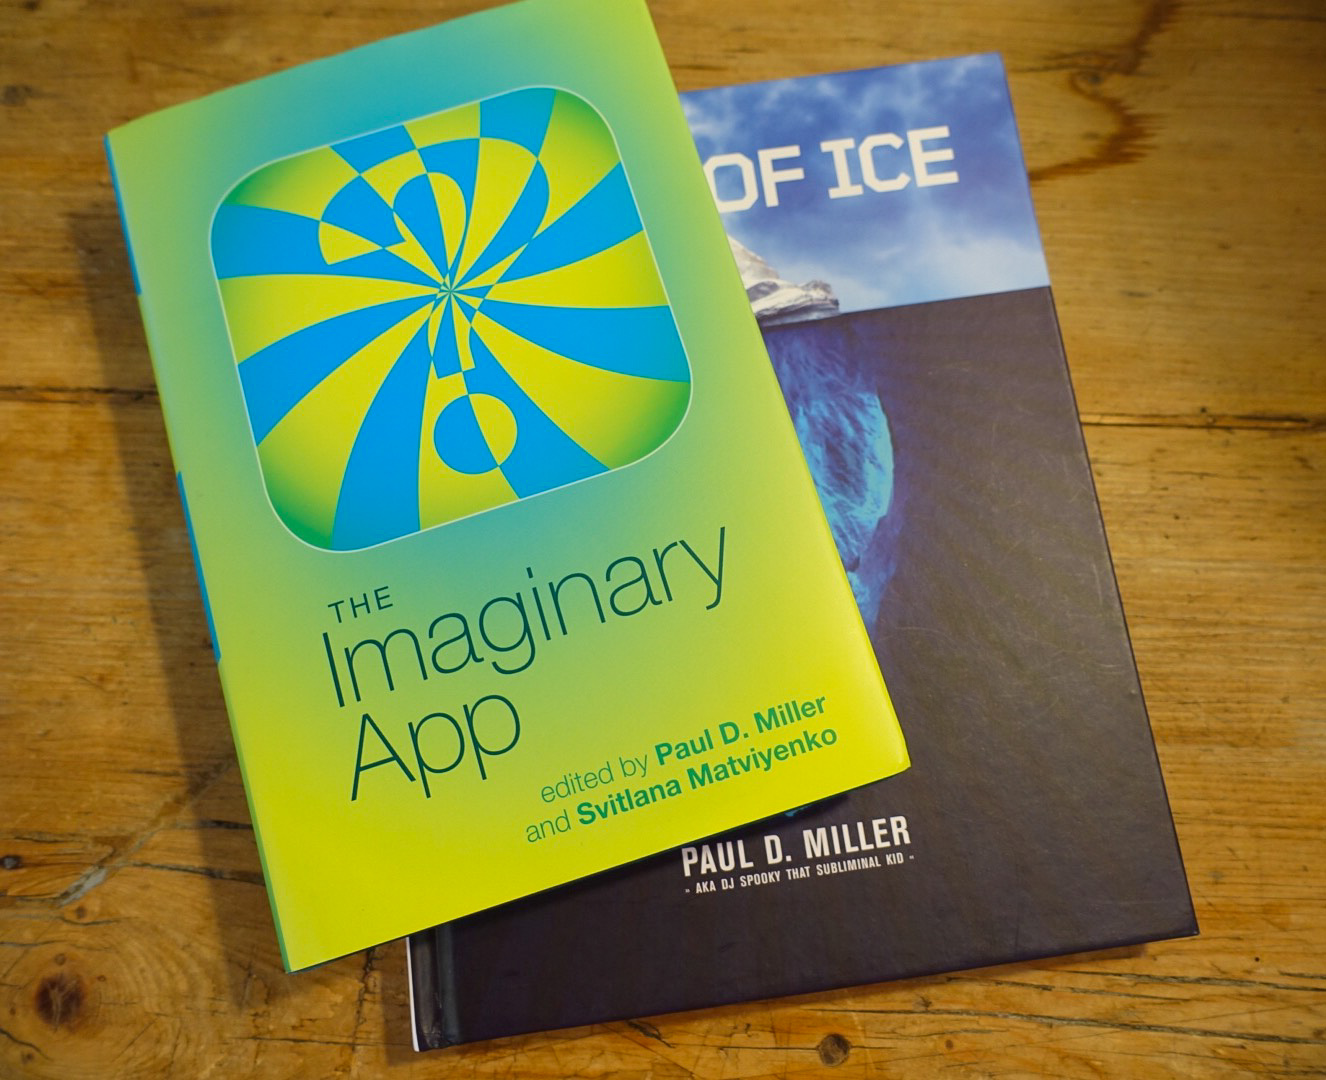 Imaginary App & Book of Ice 2-Photo by Michelle Aldredge